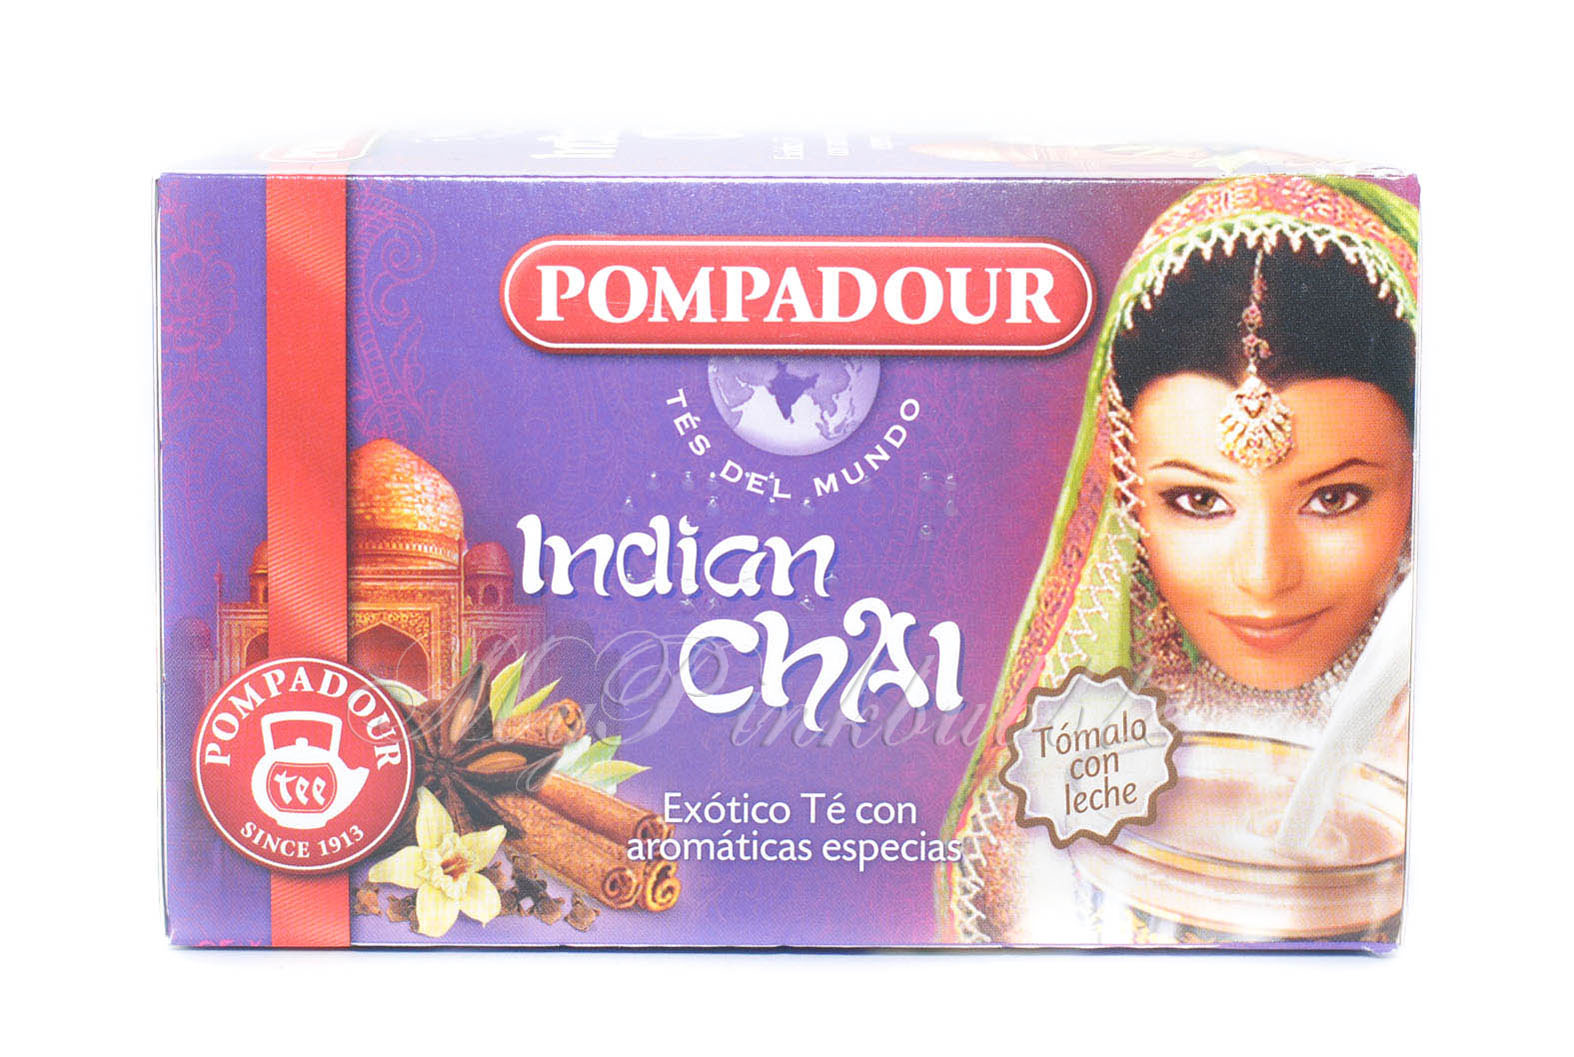 Pompadour Indian chai